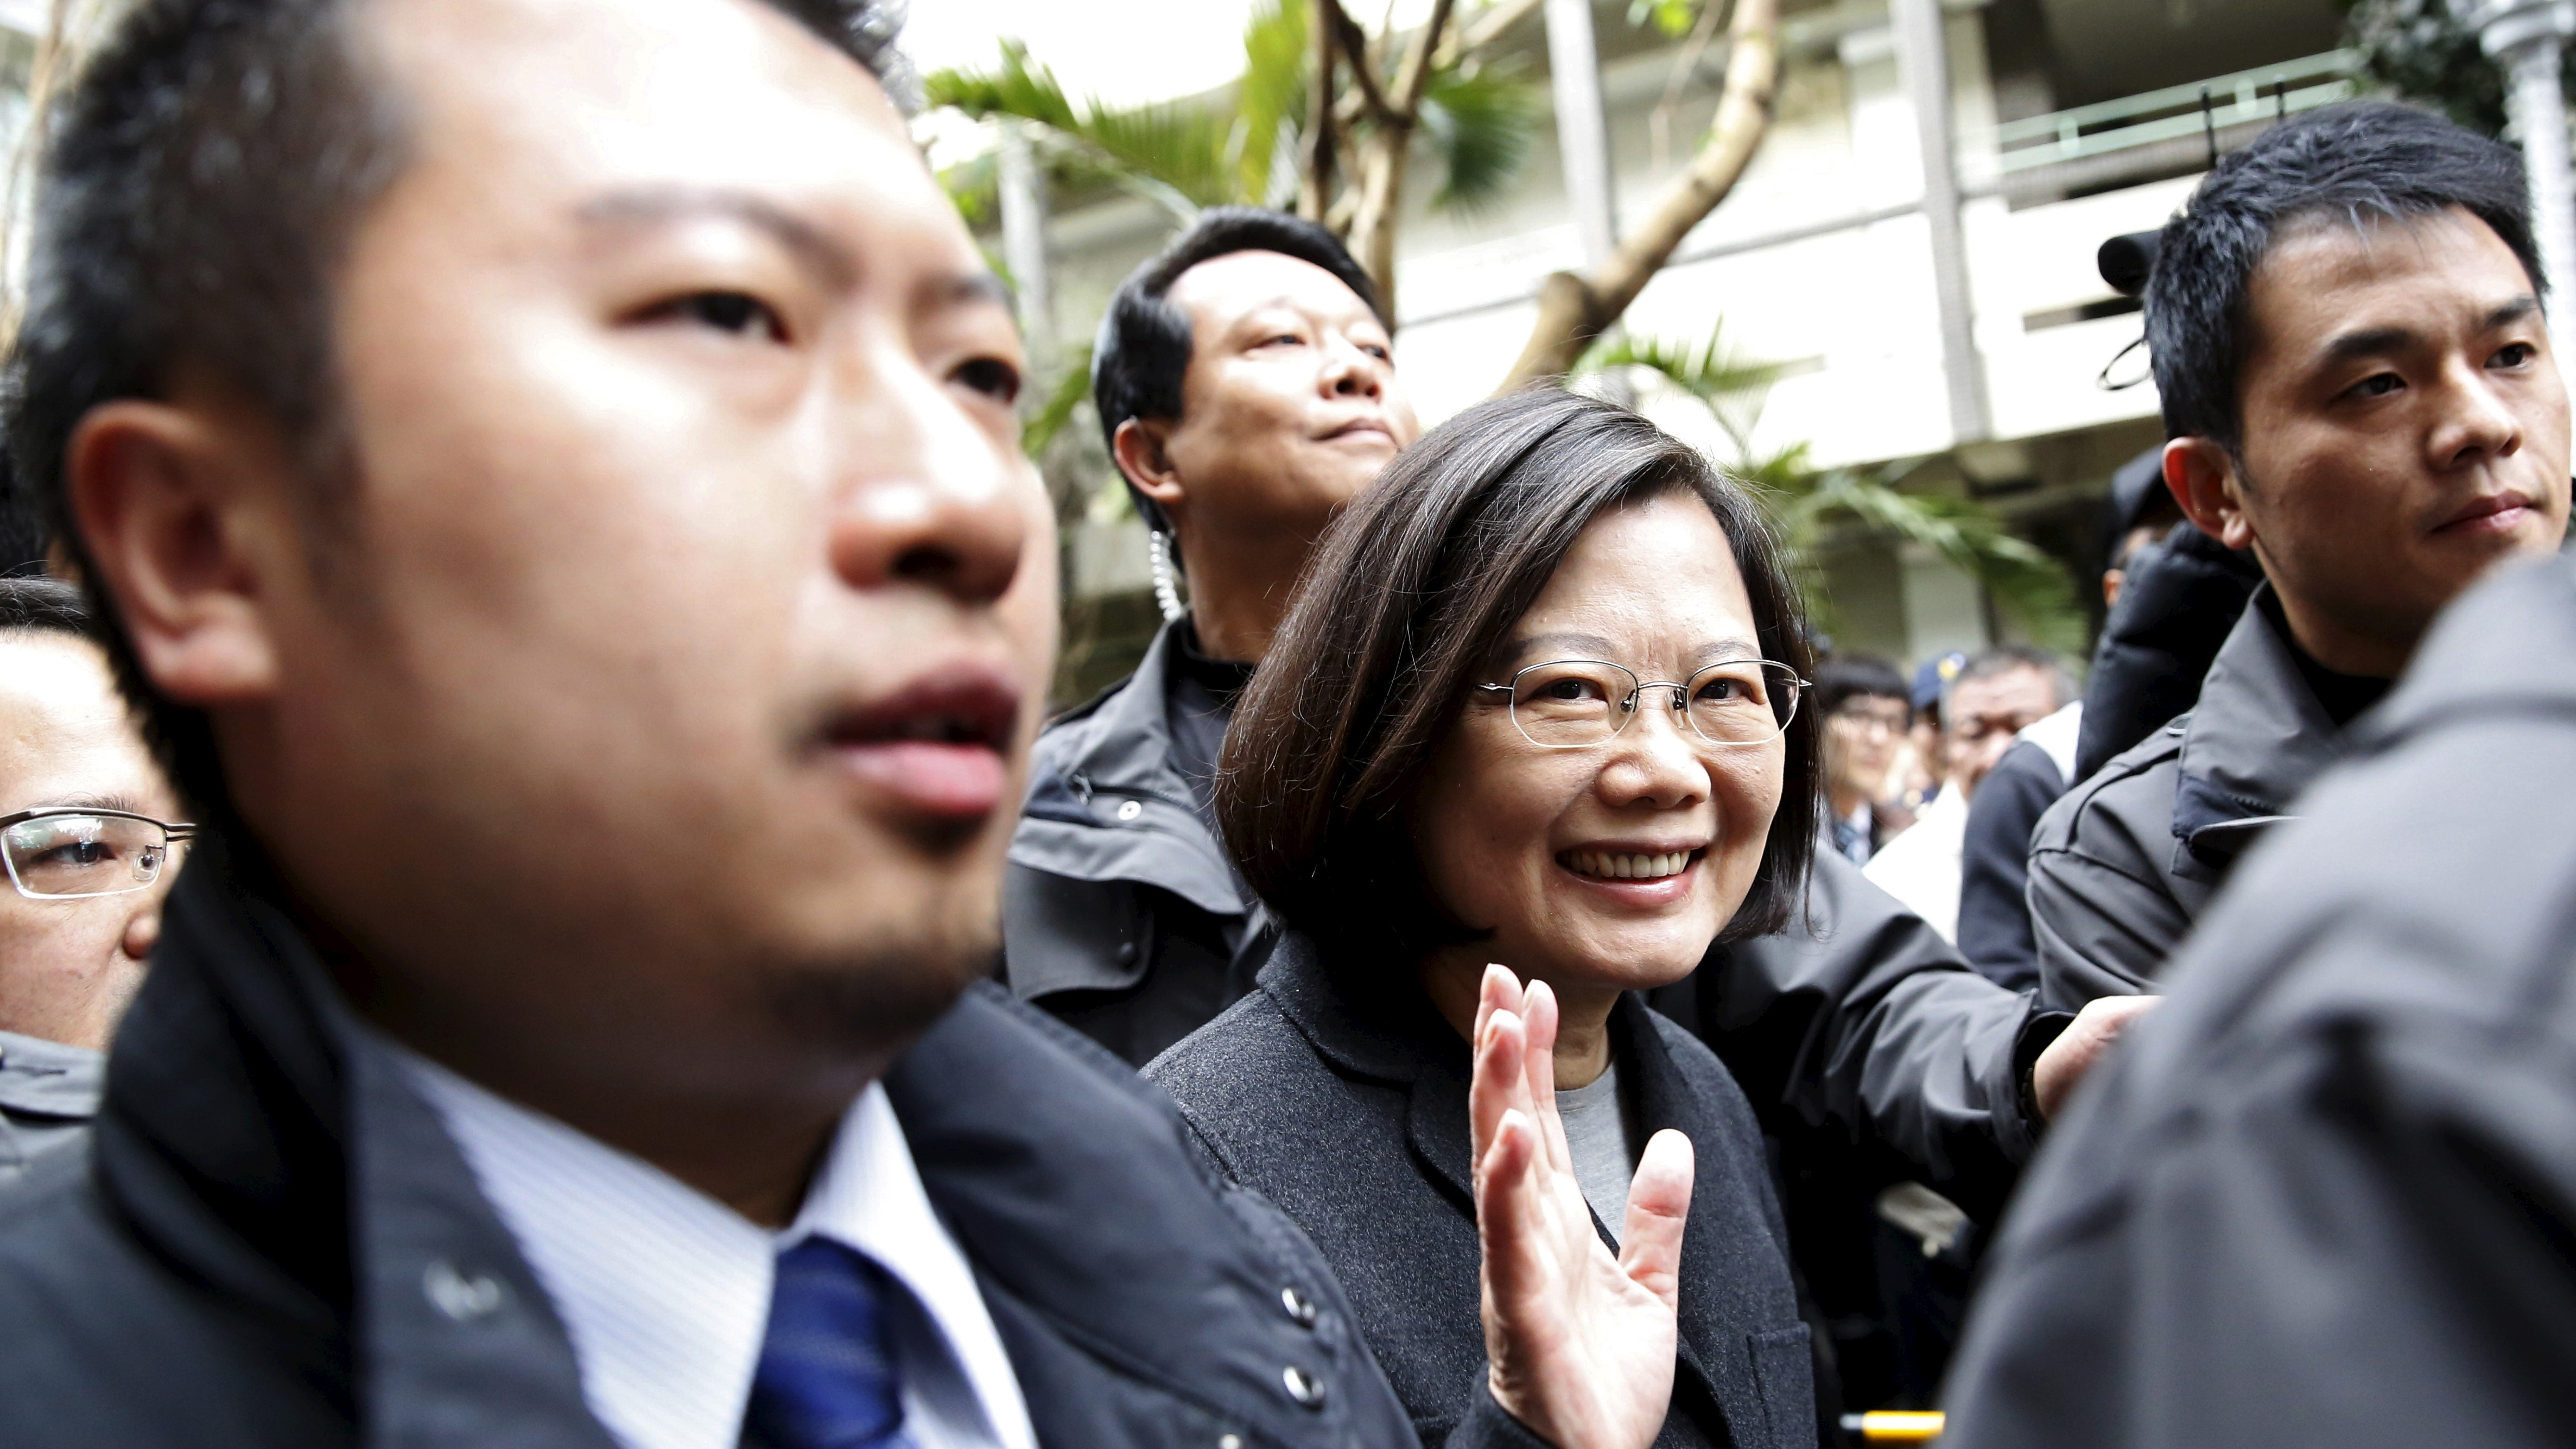 Taiwan's Democratic Progressive Party (DPP) Chairperson and presidential candidate Tsai Ing-wen leaves the polling station after casting her ballot during general elections in New Taipei, Taiwan, January 16, 2016. REUTERS/Olivia Harris - RTX22LYY